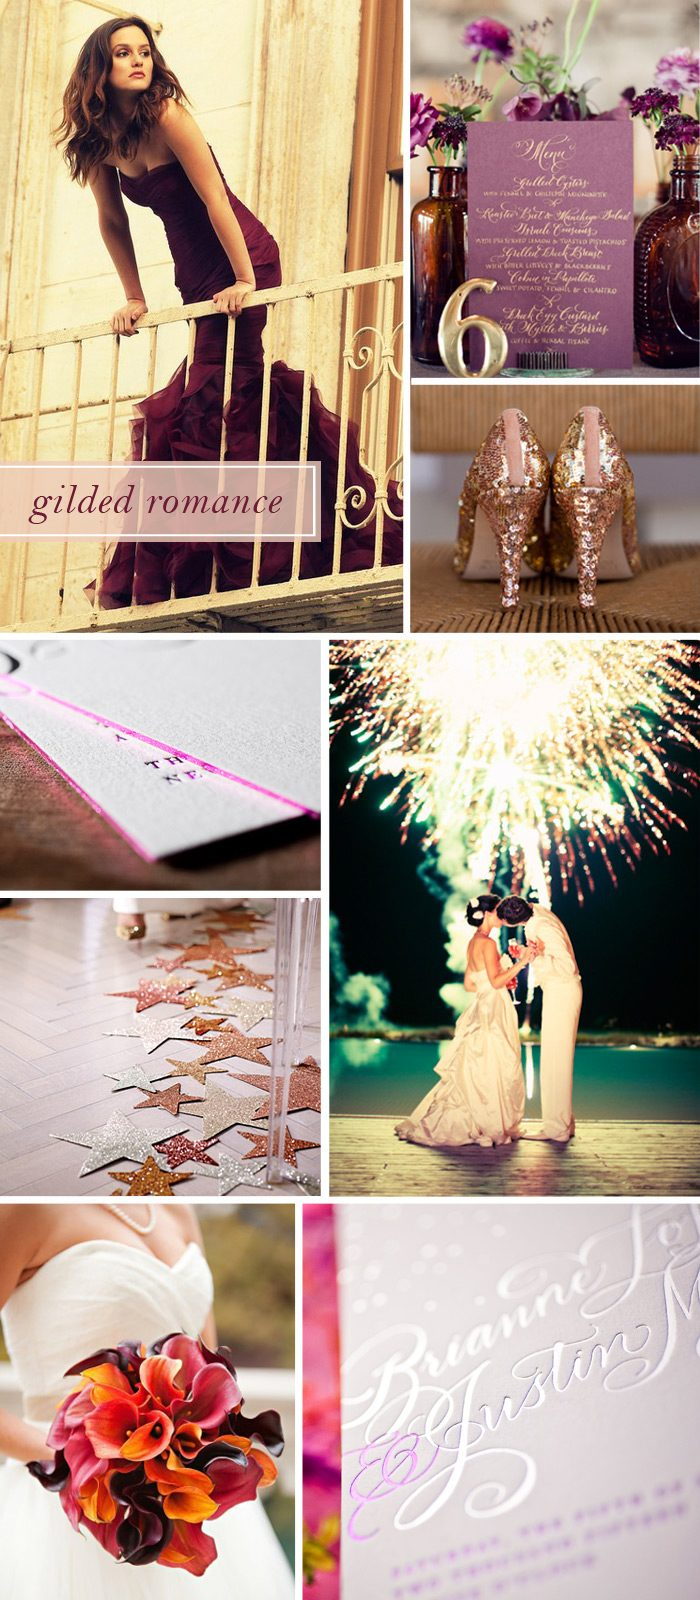 Sparkling shoes, a rich plum dress and glittering fireworks inspired Bella Figura's Gilded Romance design